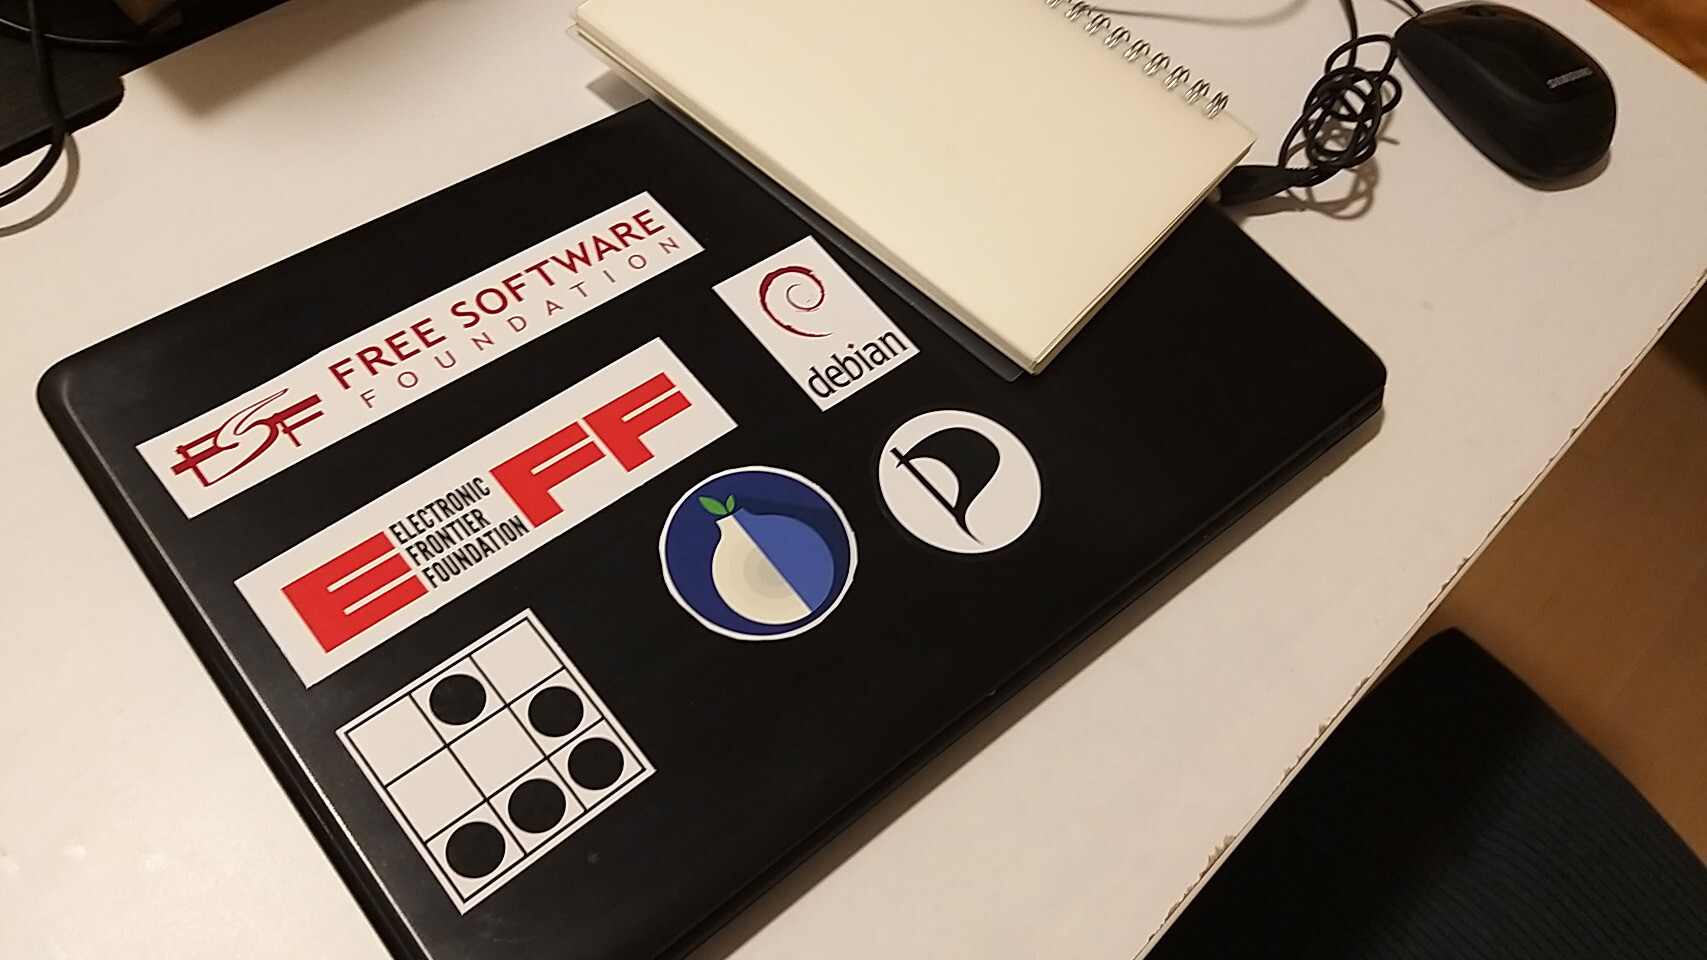 A laptop with lots of Free Software projects and organizations' stickers